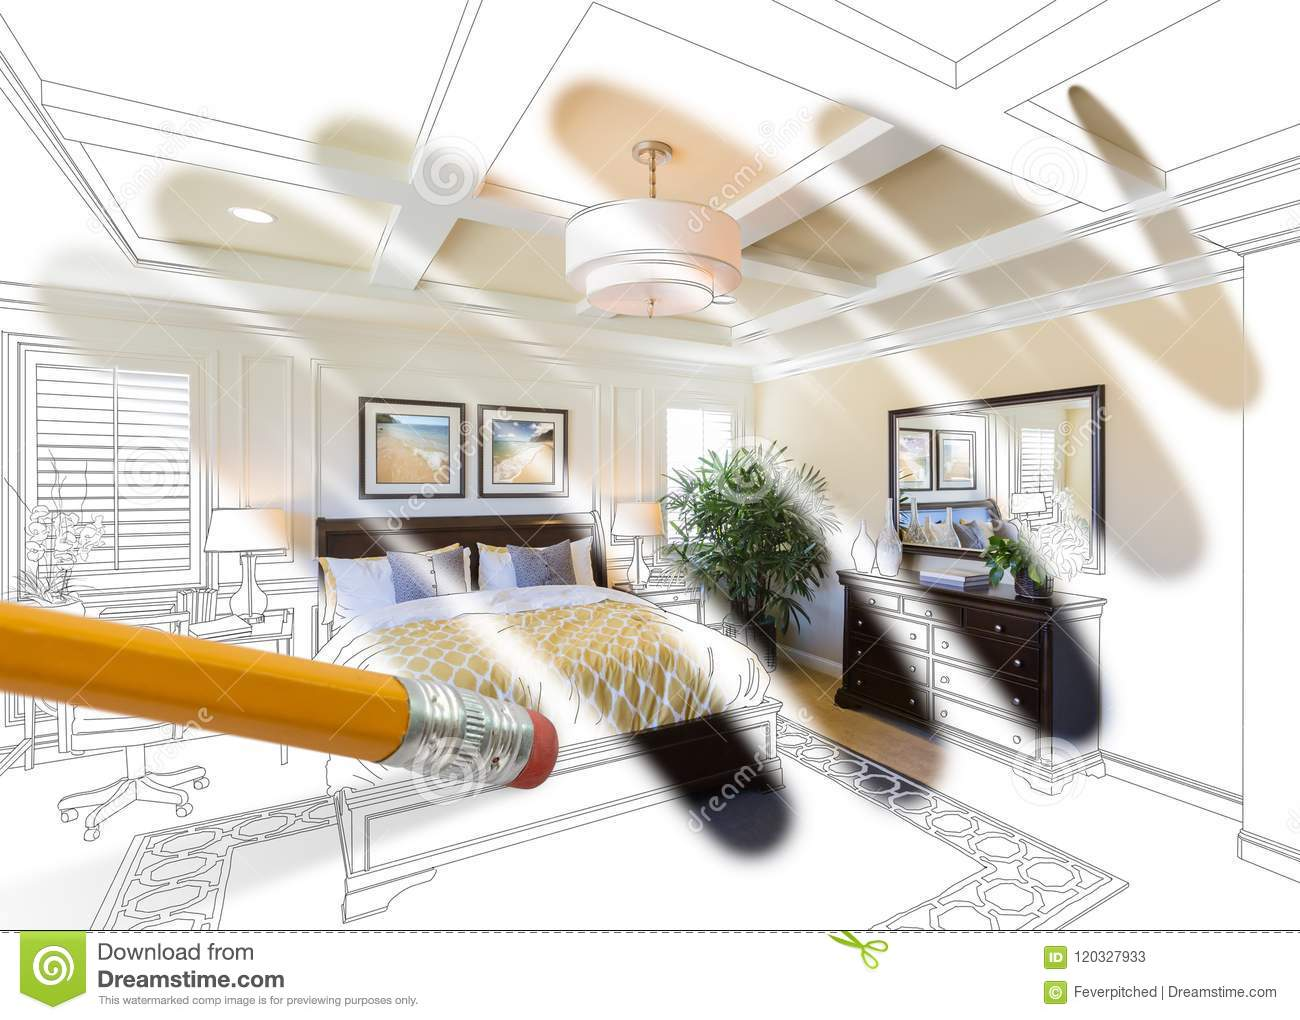 Pencil Erasing Drawing To Reveal Finished Custom Bedroom Design